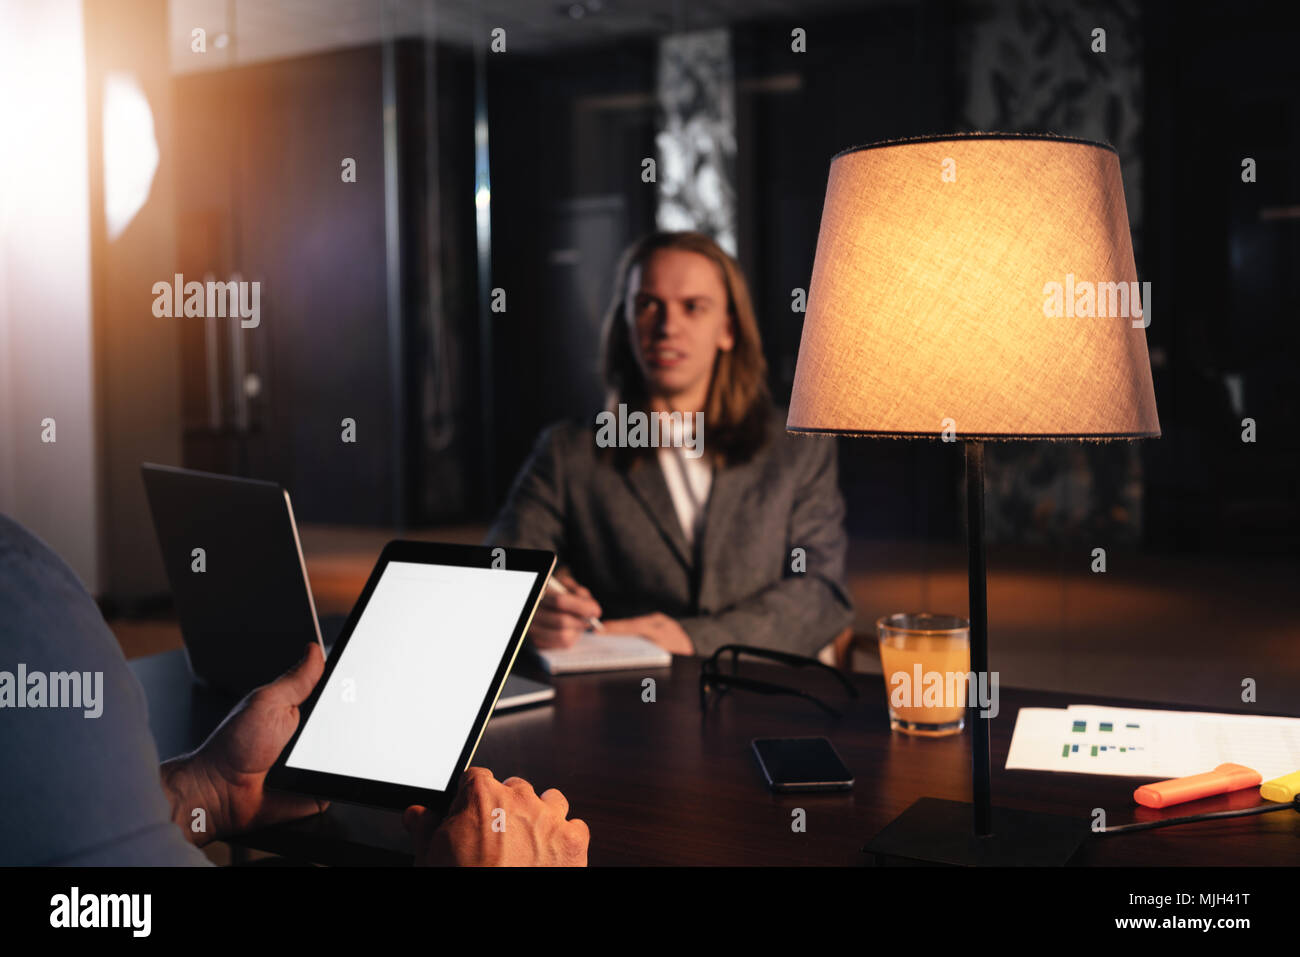 Two coworkers meet in night loft office. Manager conducts an interview. Dialogue of businessmen about a new startup - Stock Image